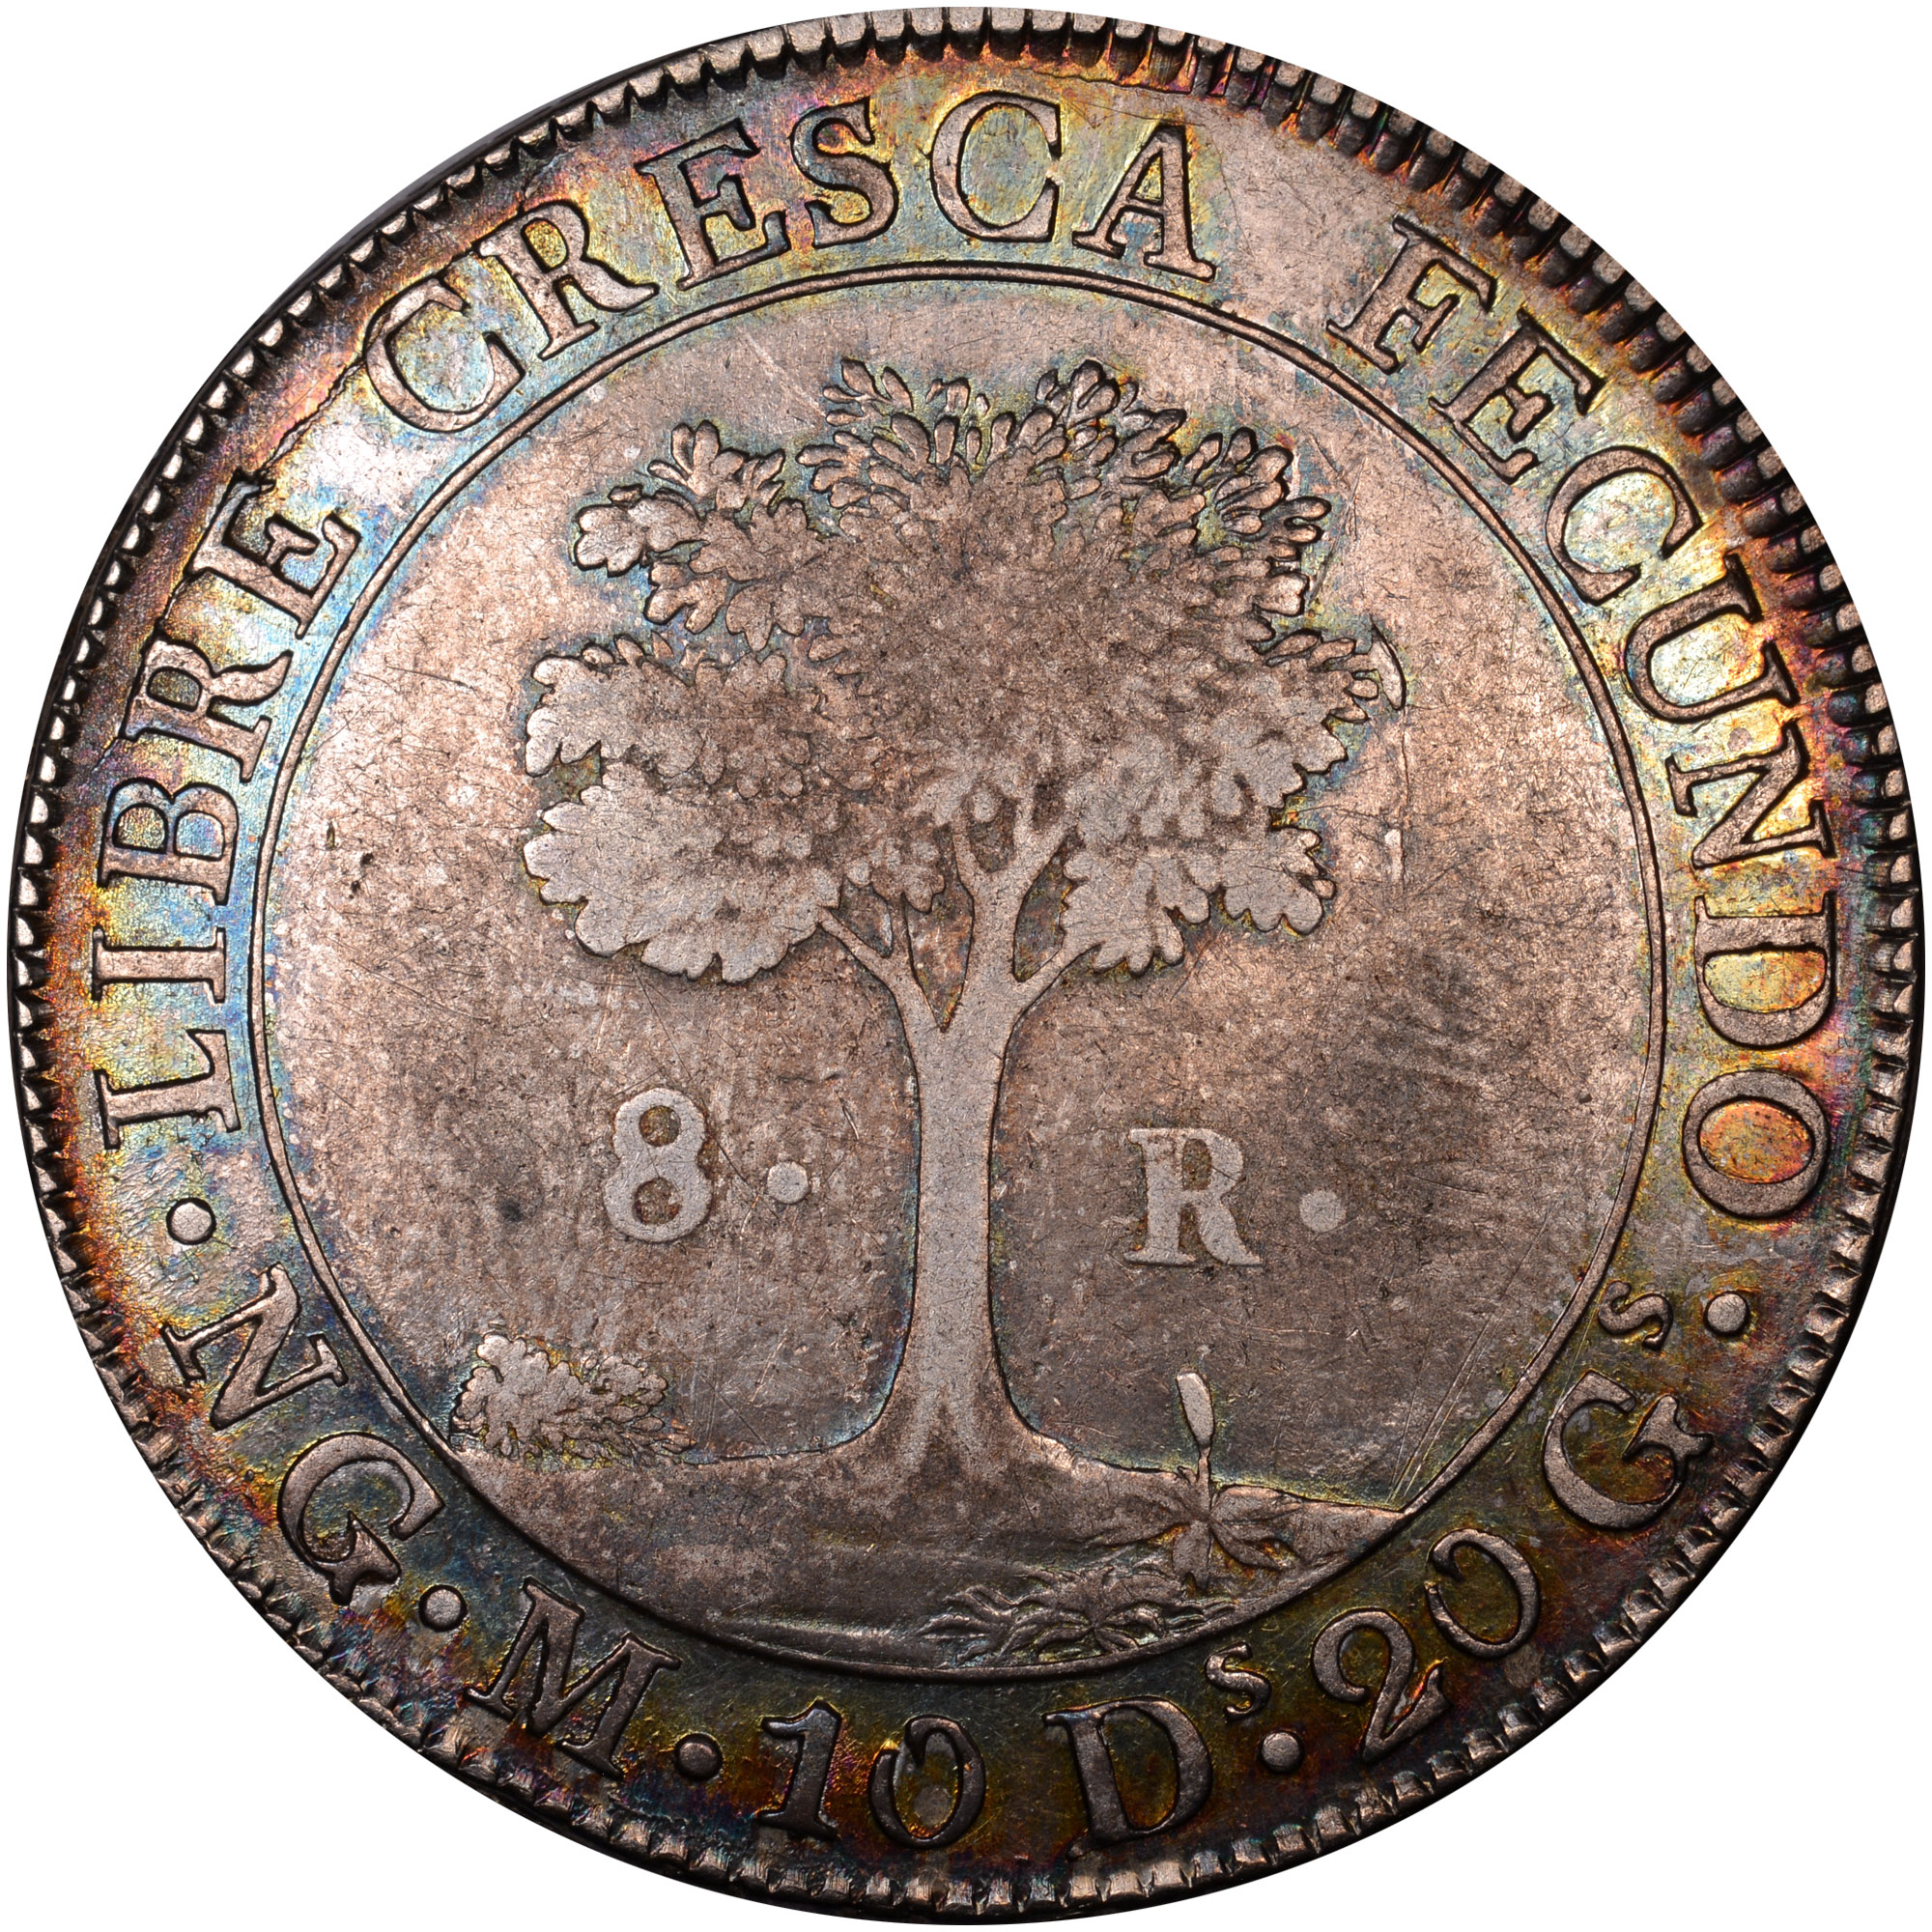 1824-1847/6 Central American Republic 8 Reales reverse